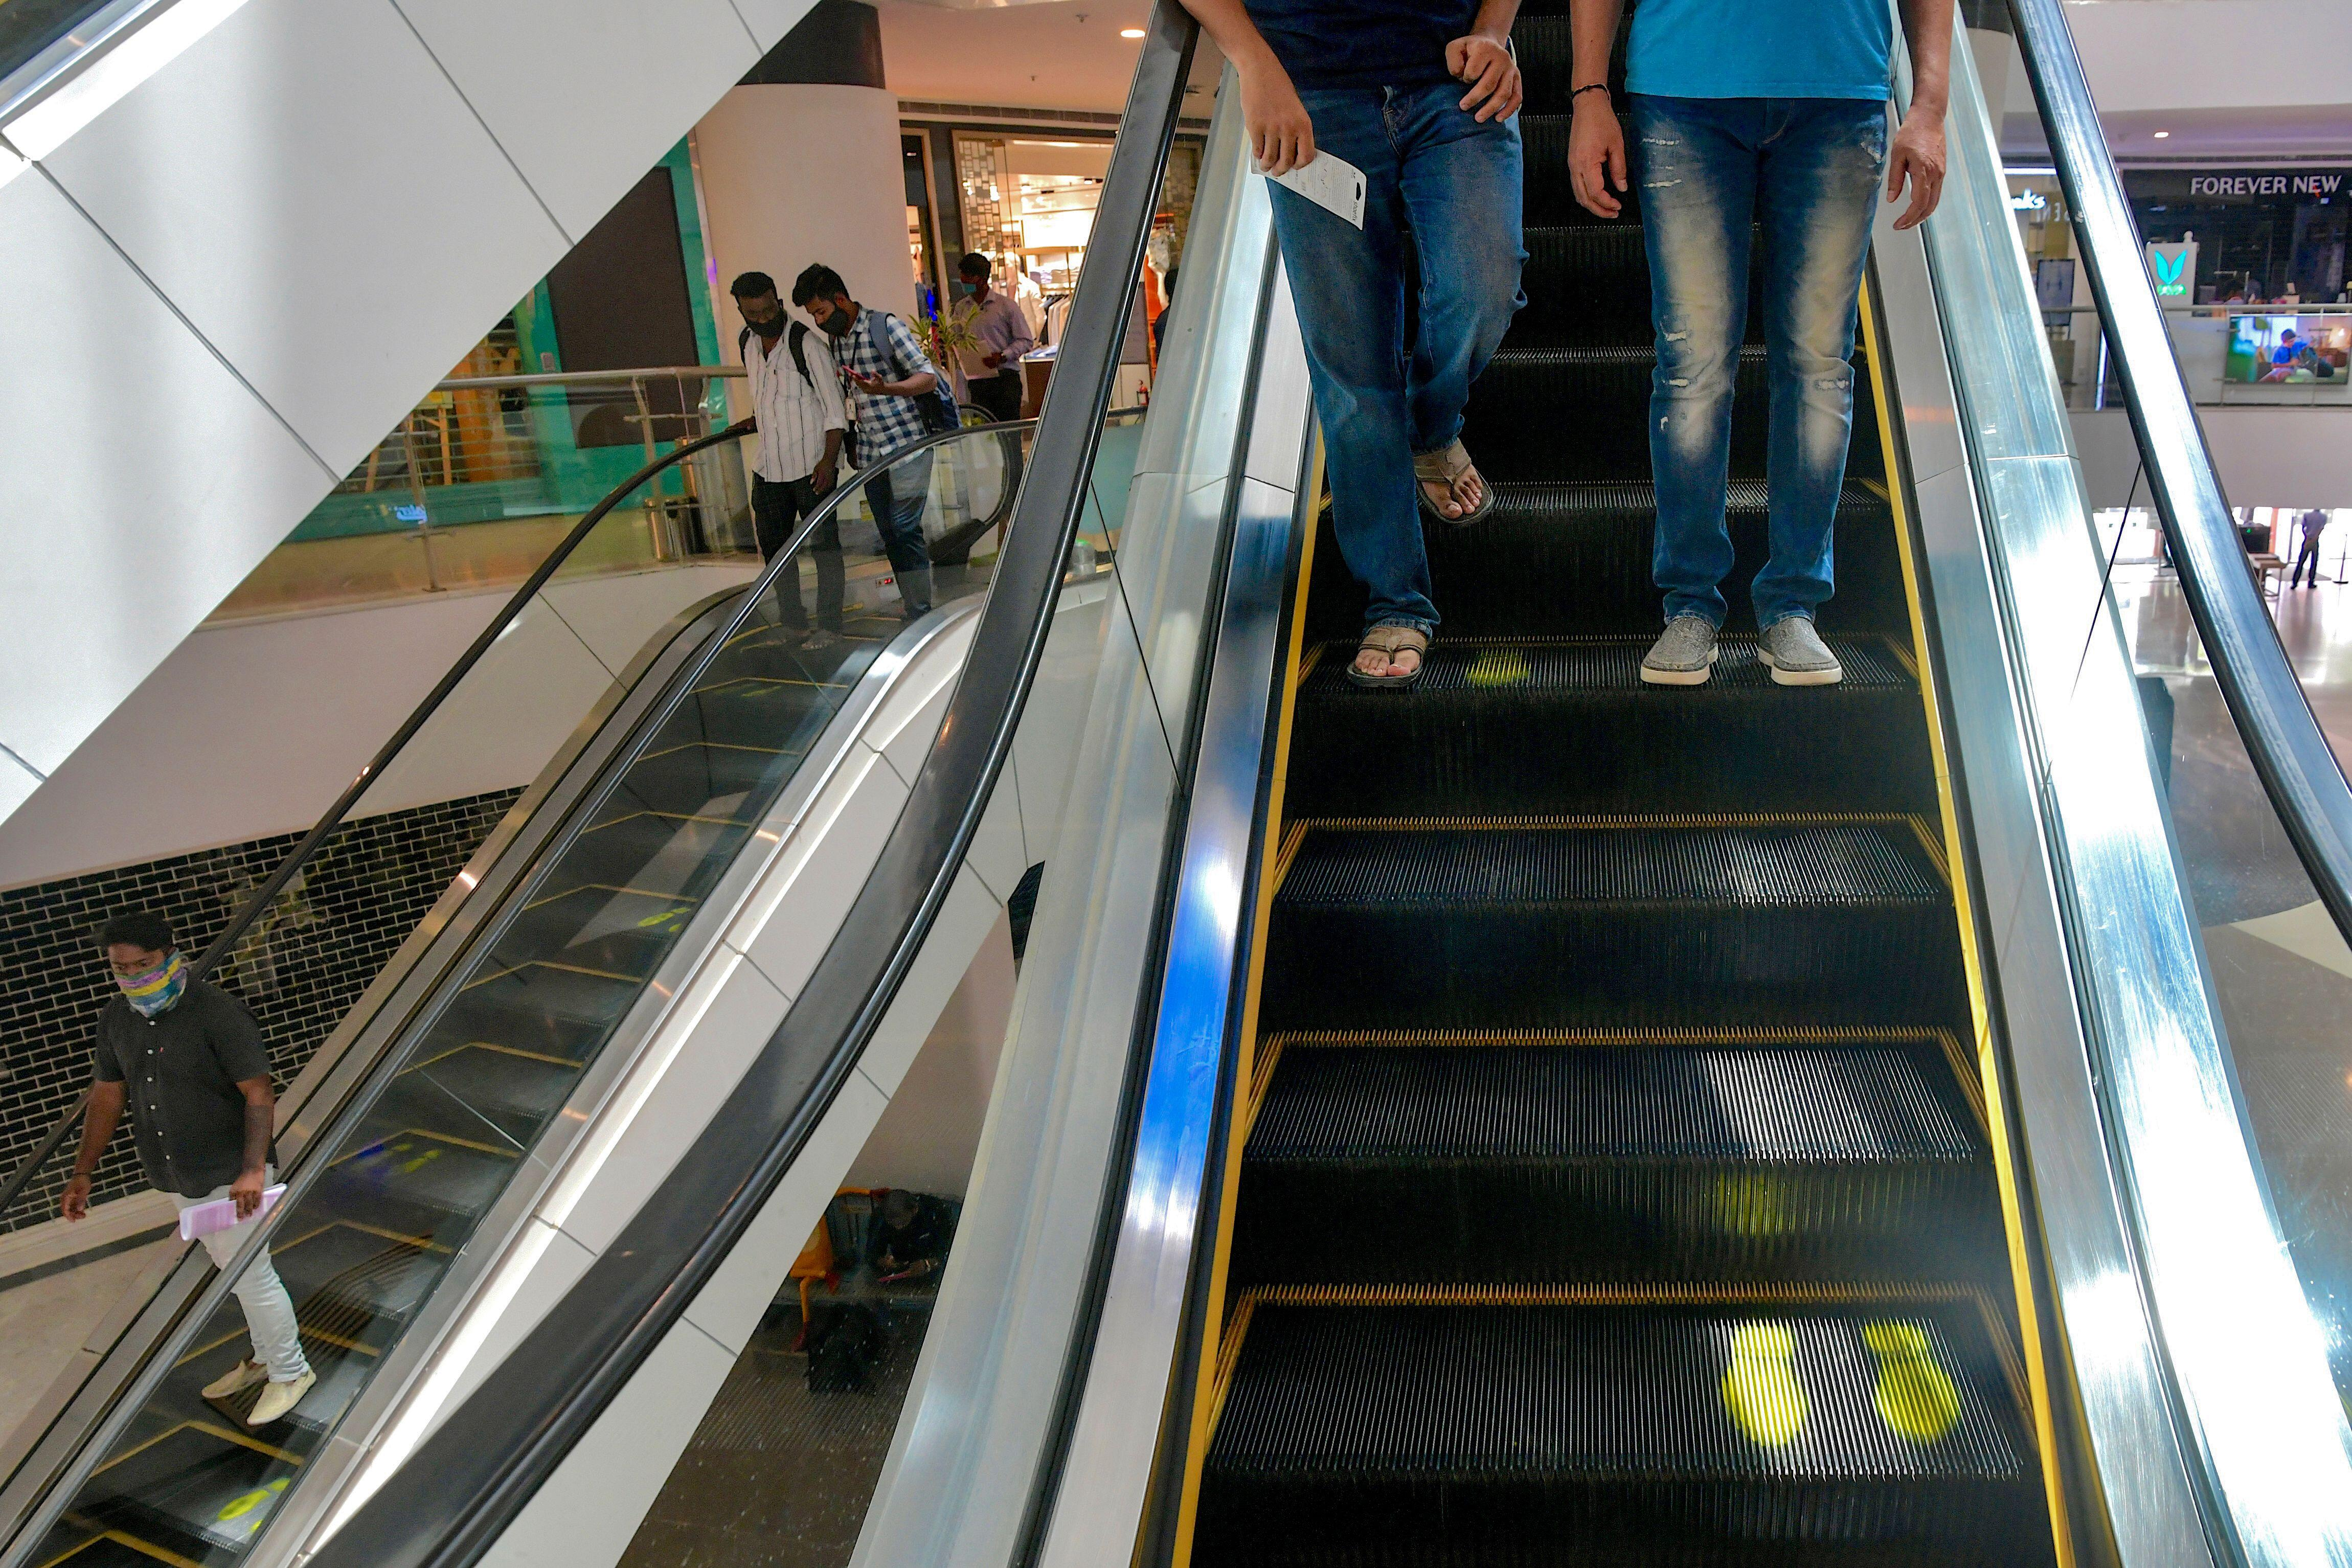 India: Escalators marked for social distancing